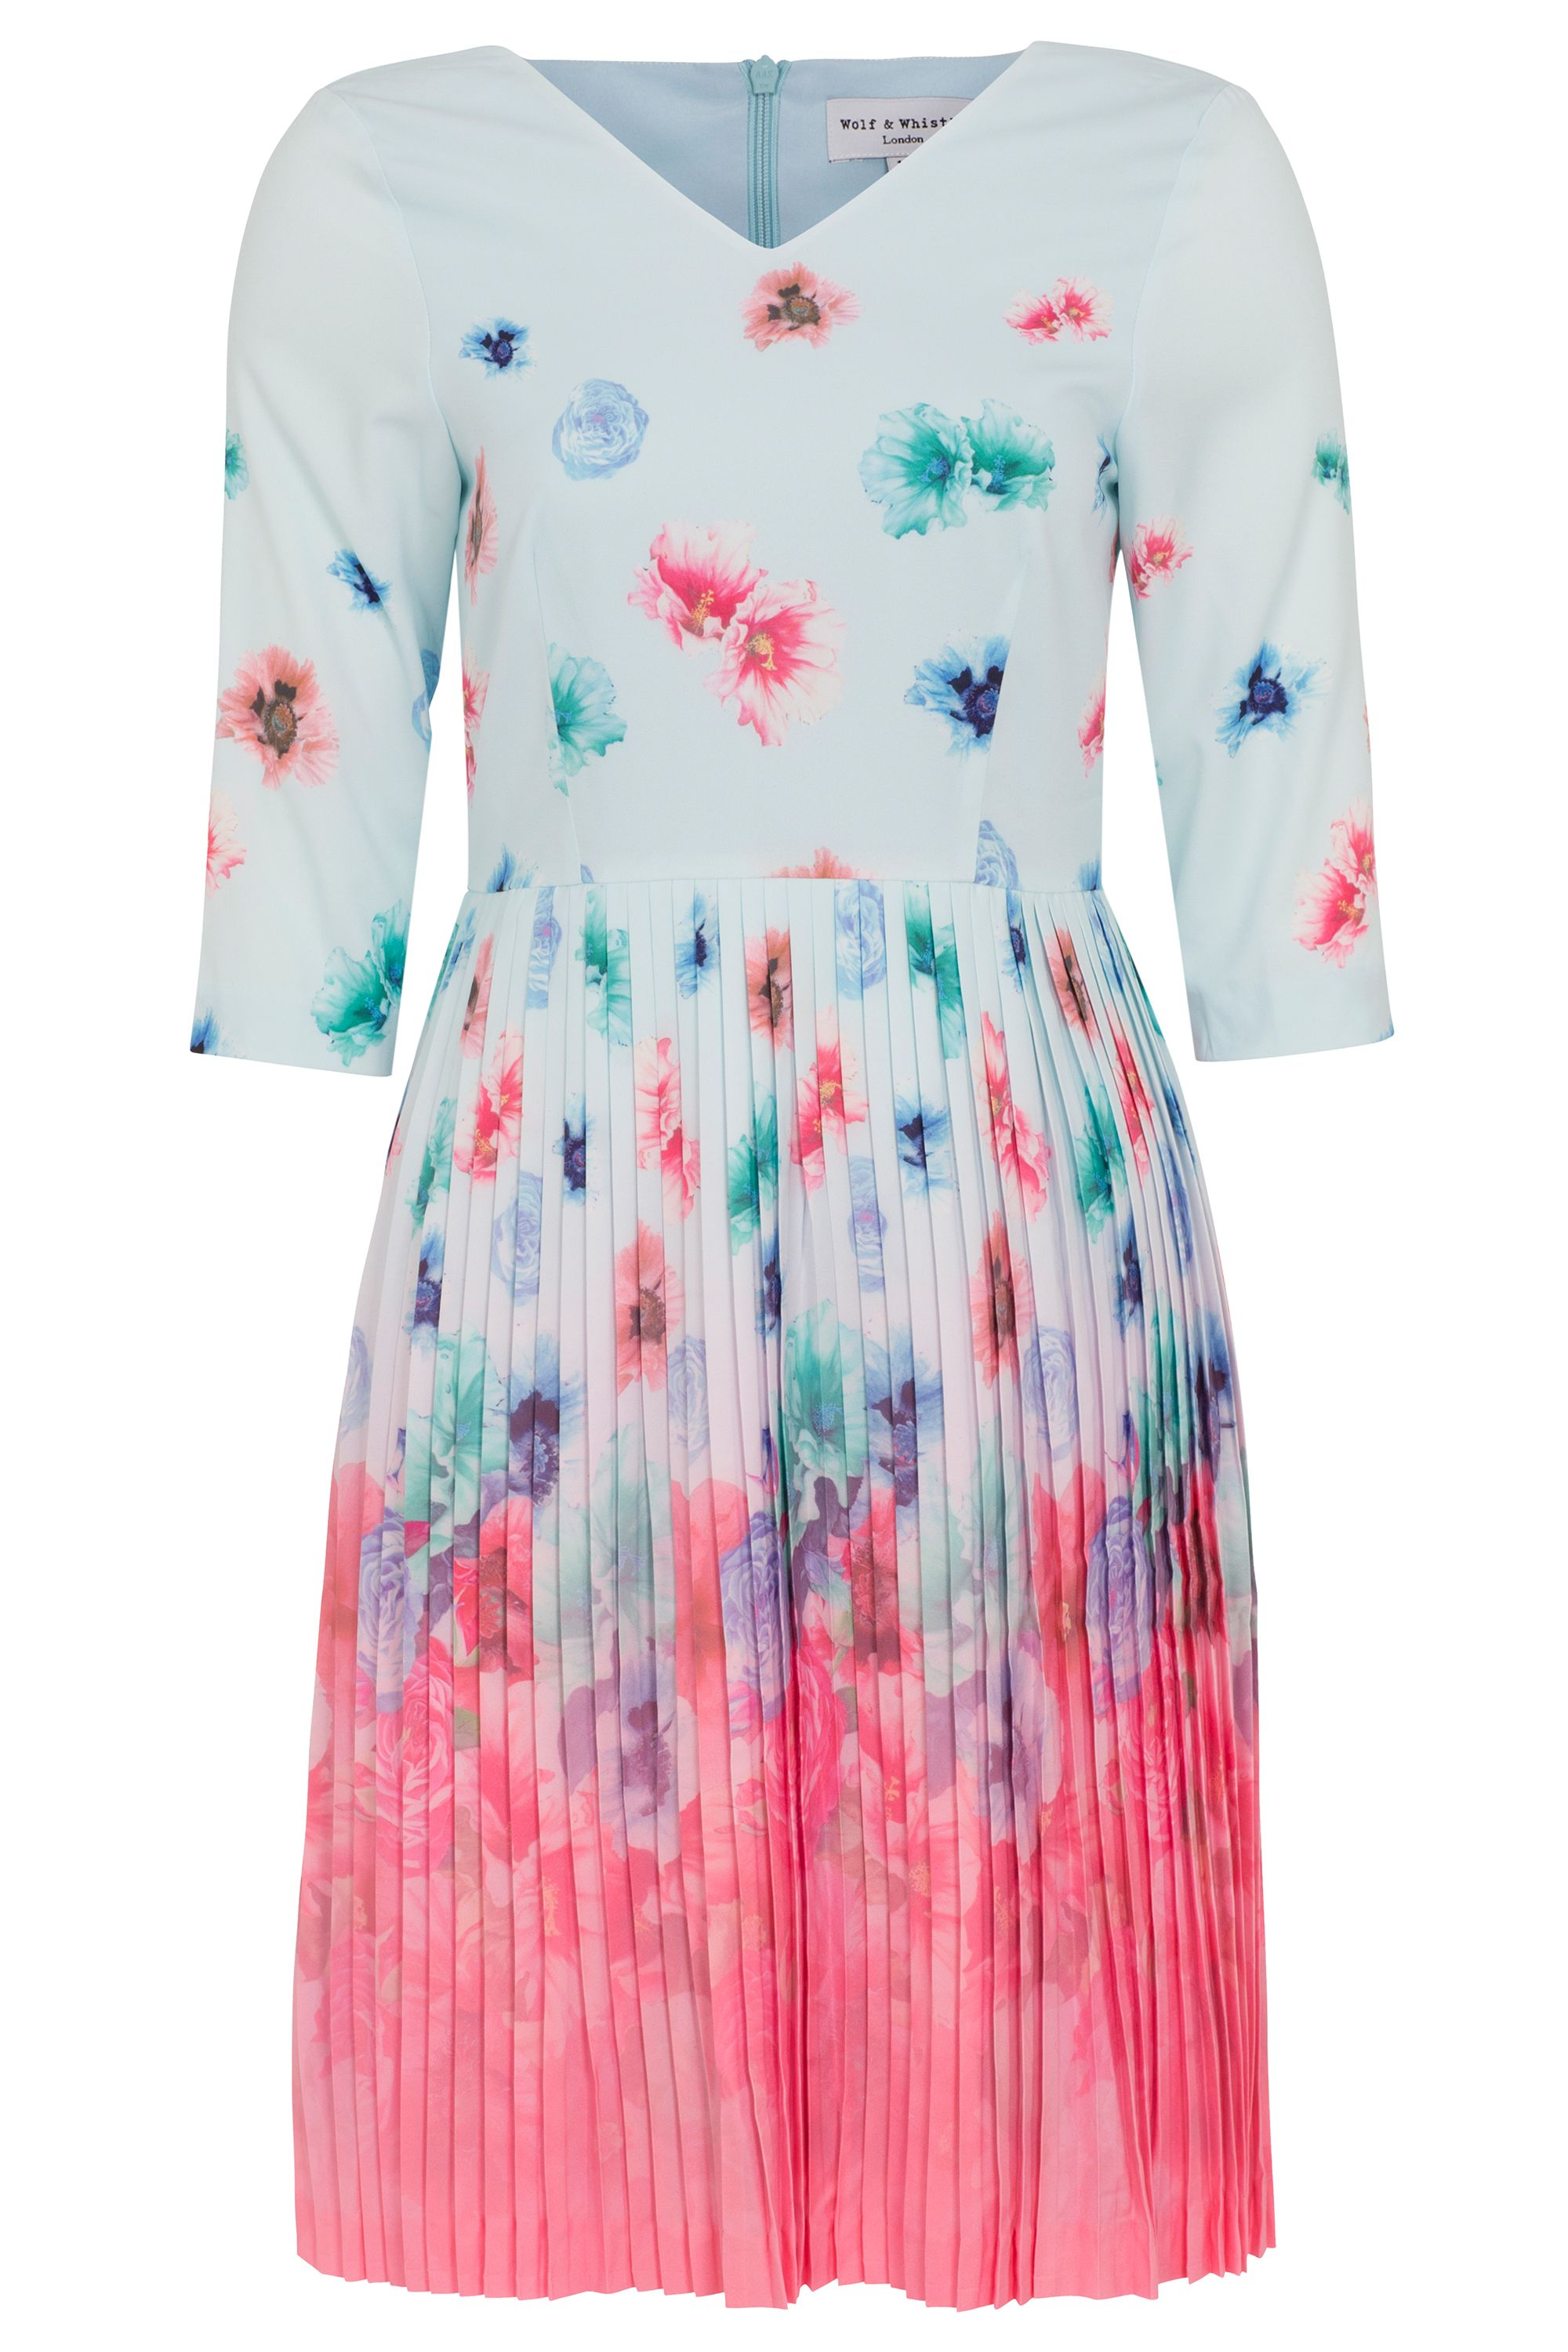 Wolf & Whistle Faded Floral Pleated Dress, Multi-coloured